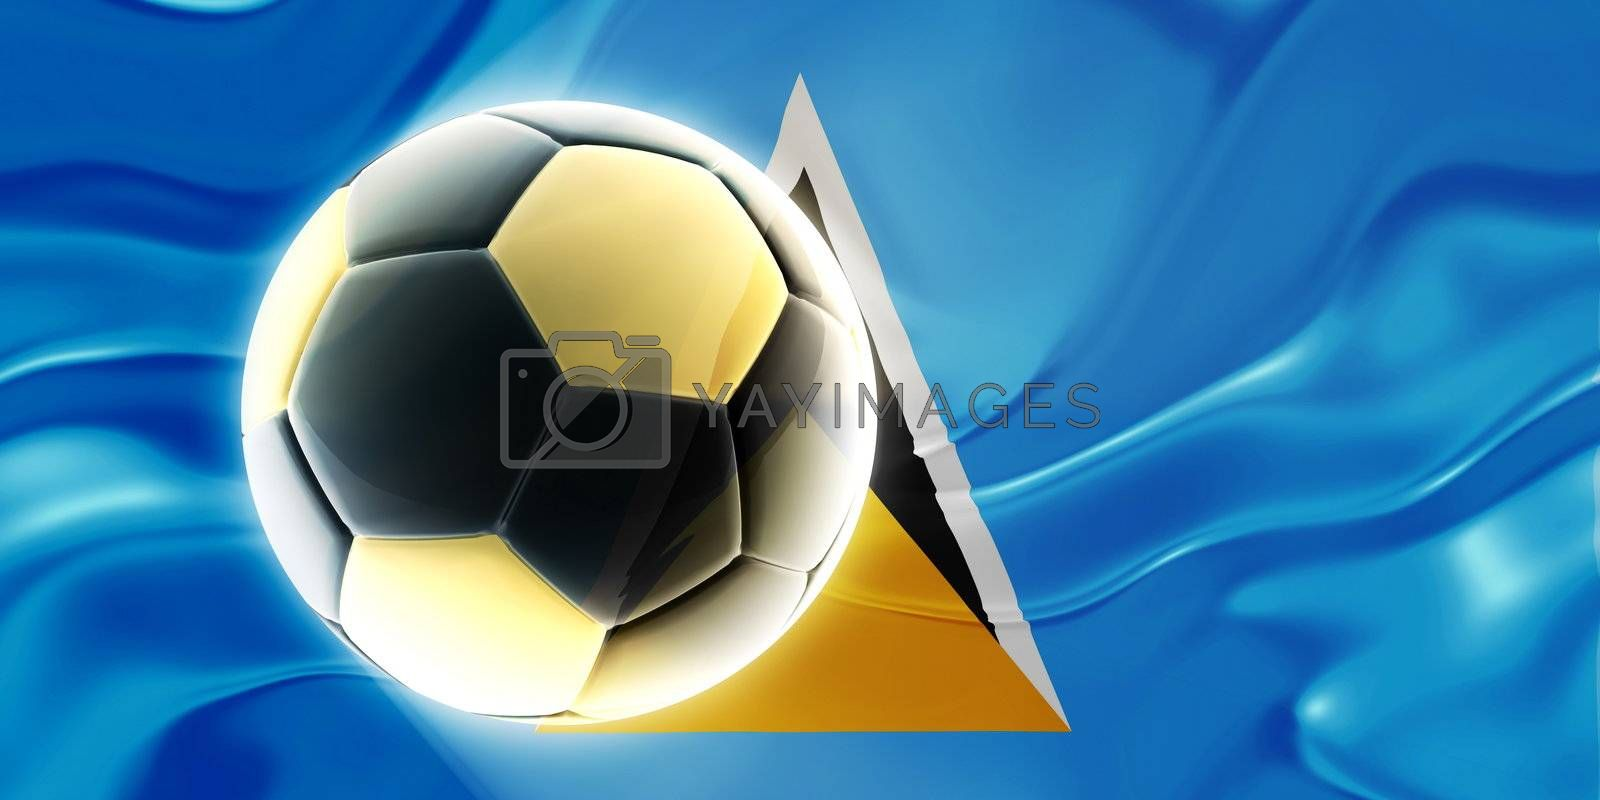 Flag of Saint Lucia, national country symbol illustration wavy fabric sports soccer football